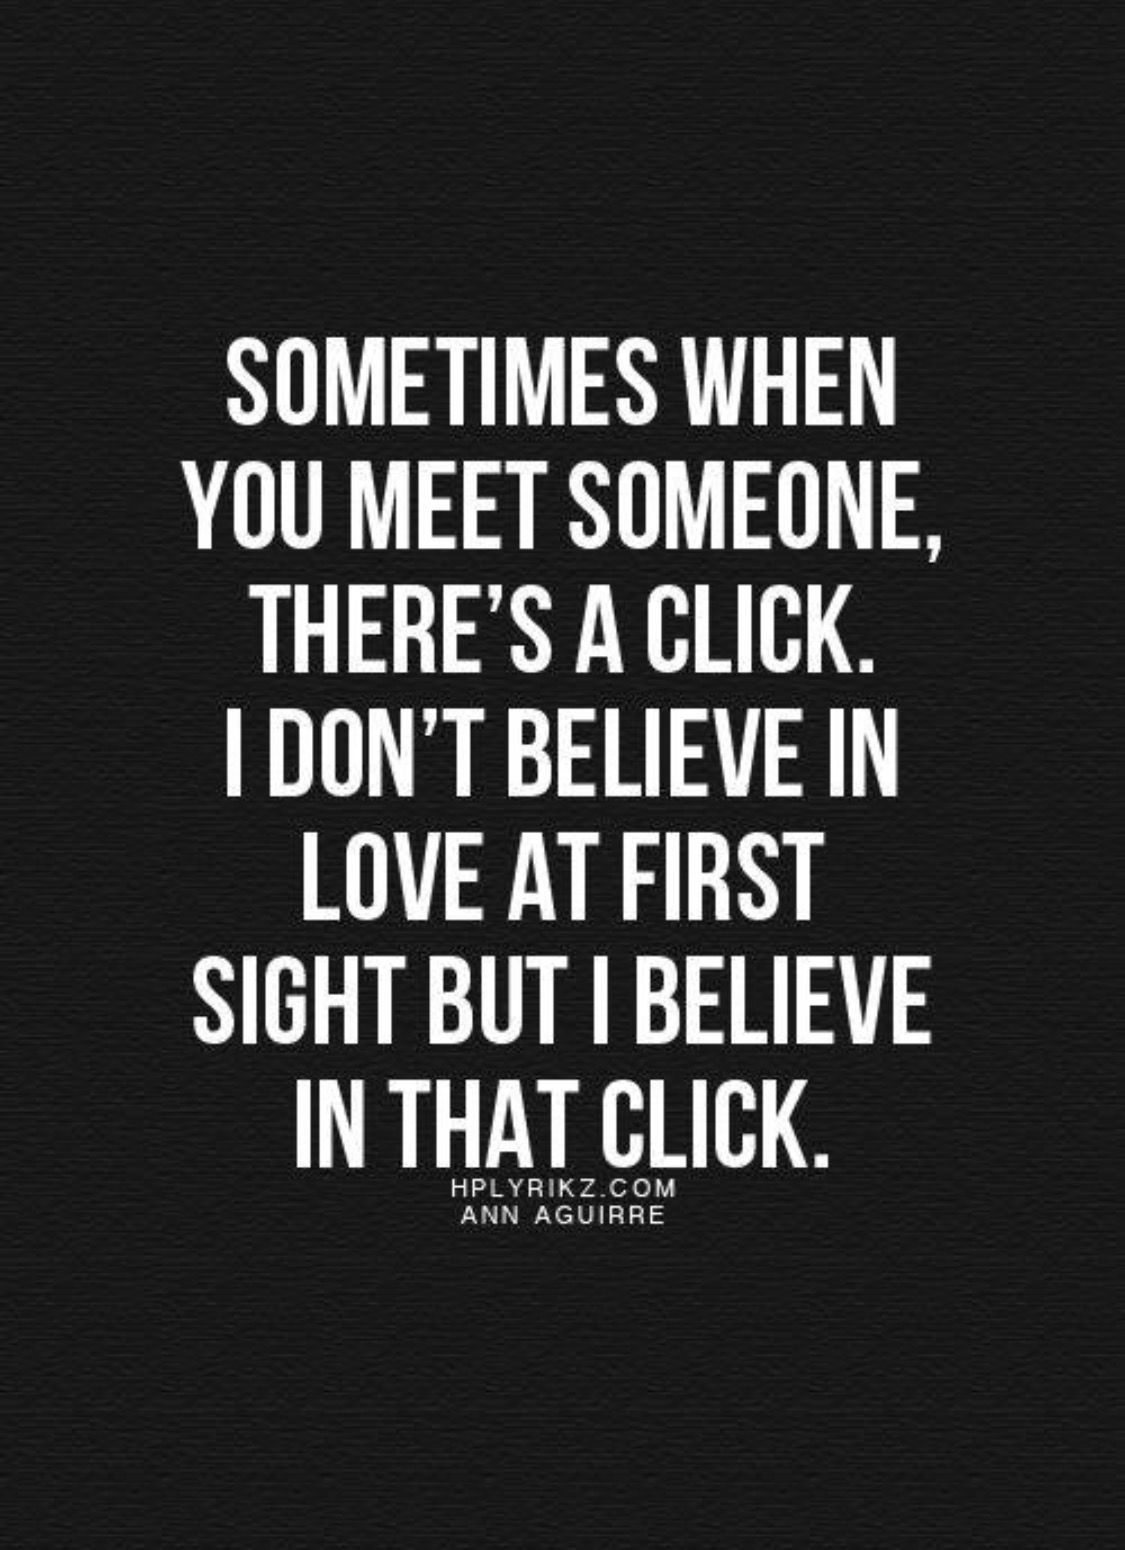 Pin by Alison Knight on Memes Love at first sight, First